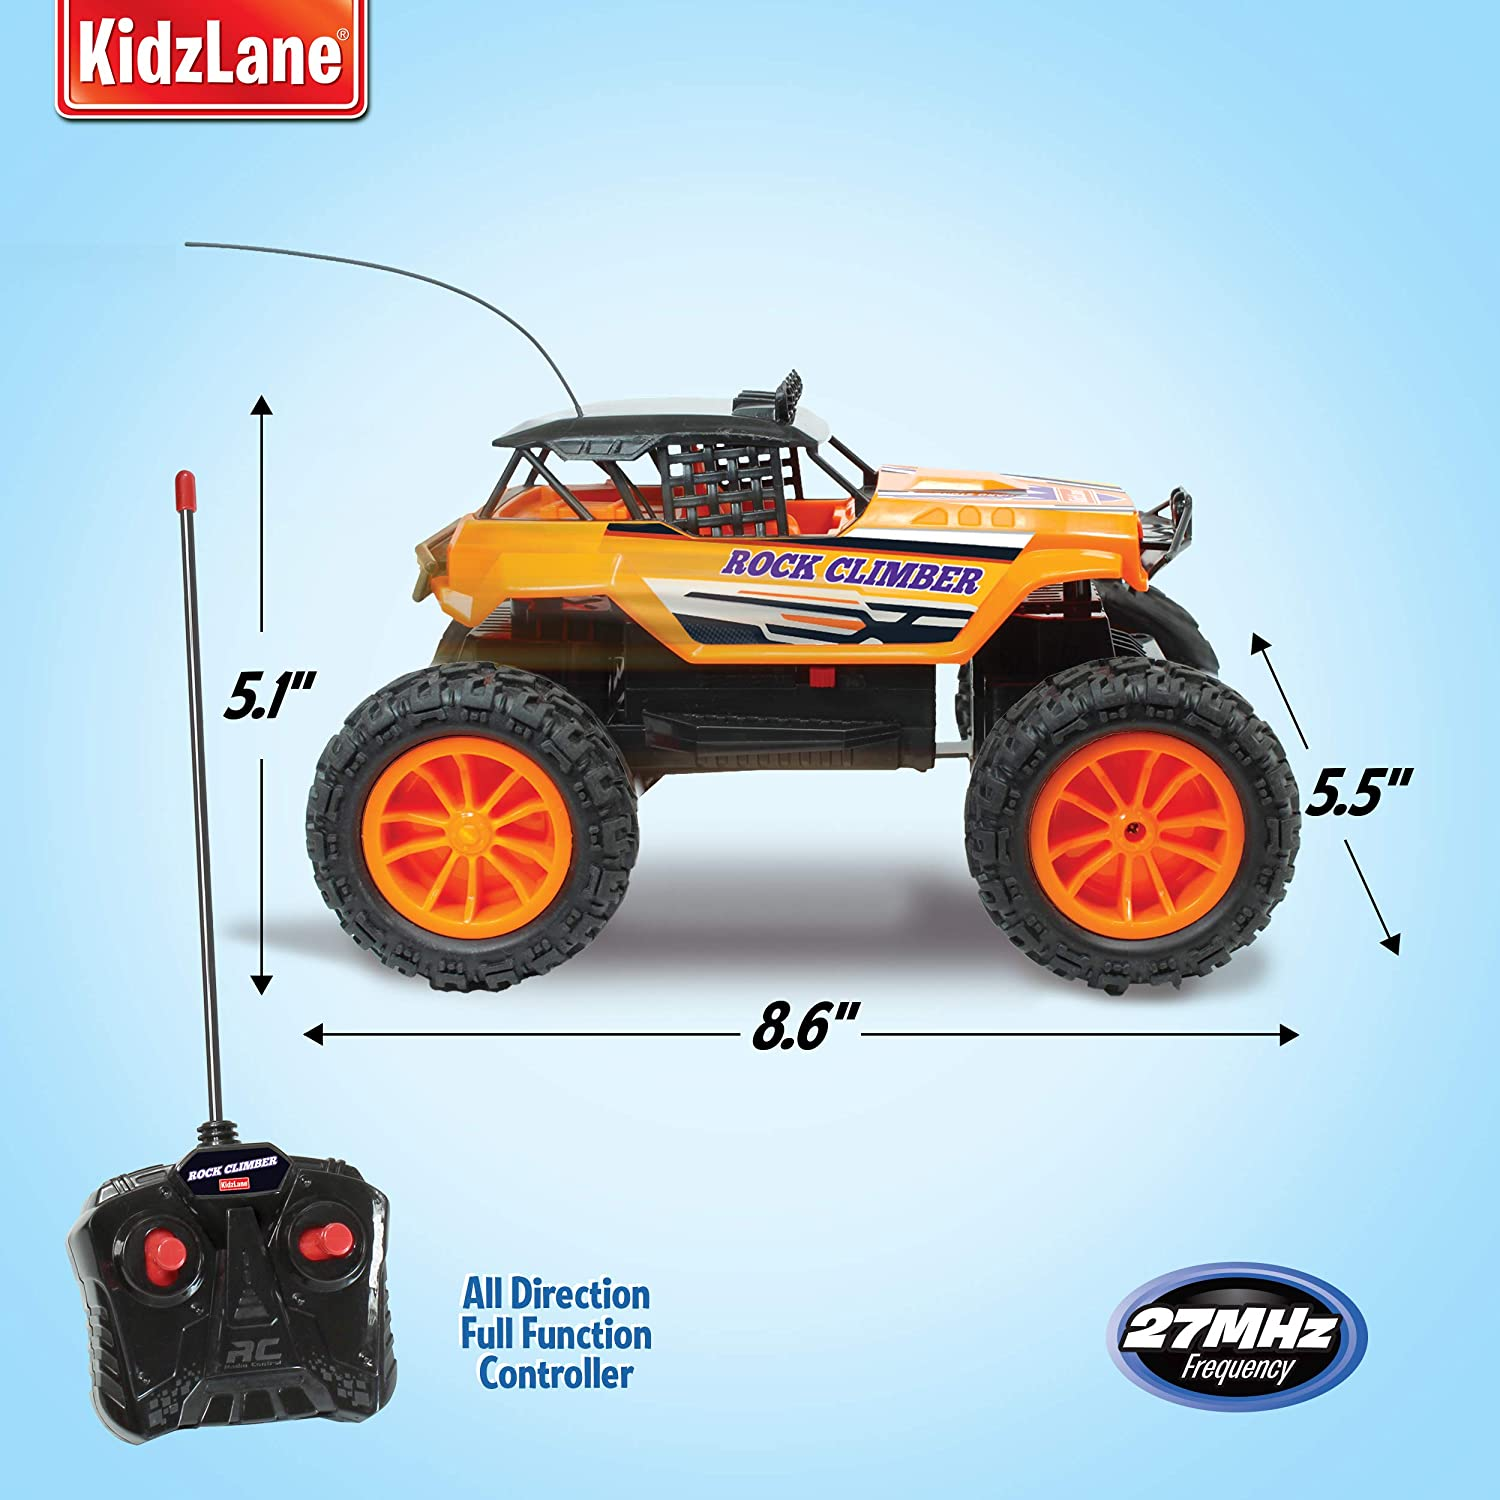 27 MHz Offroad RC Truck Kidzlane Rock Climber Remote Control Car for Boys and Girls